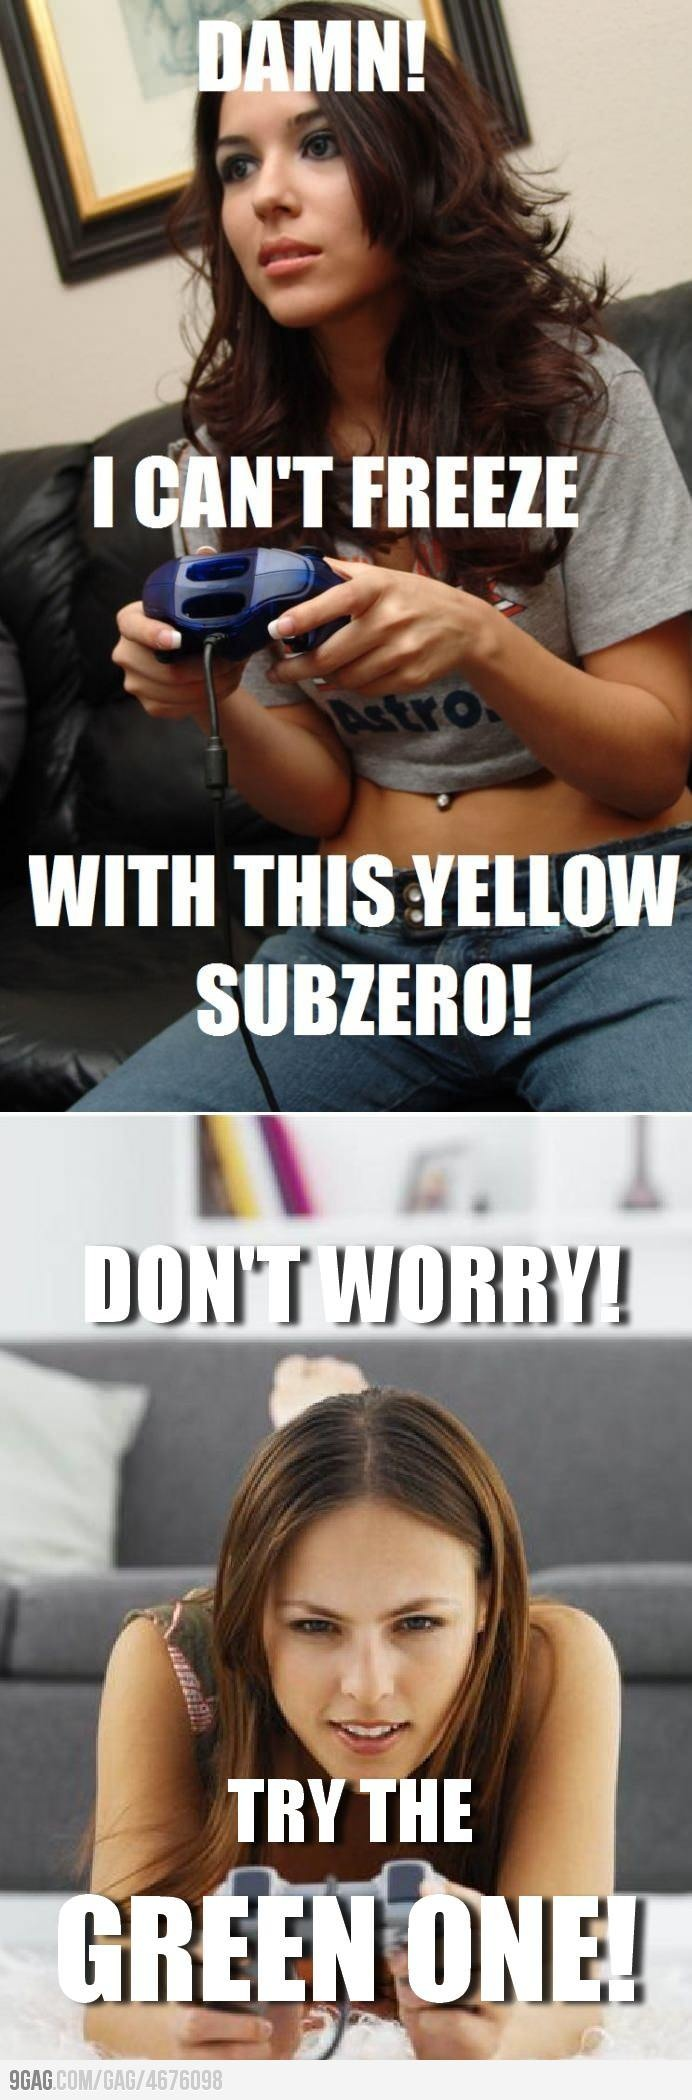 Not HOT know the difference between scorpion and subzero bitches!!!